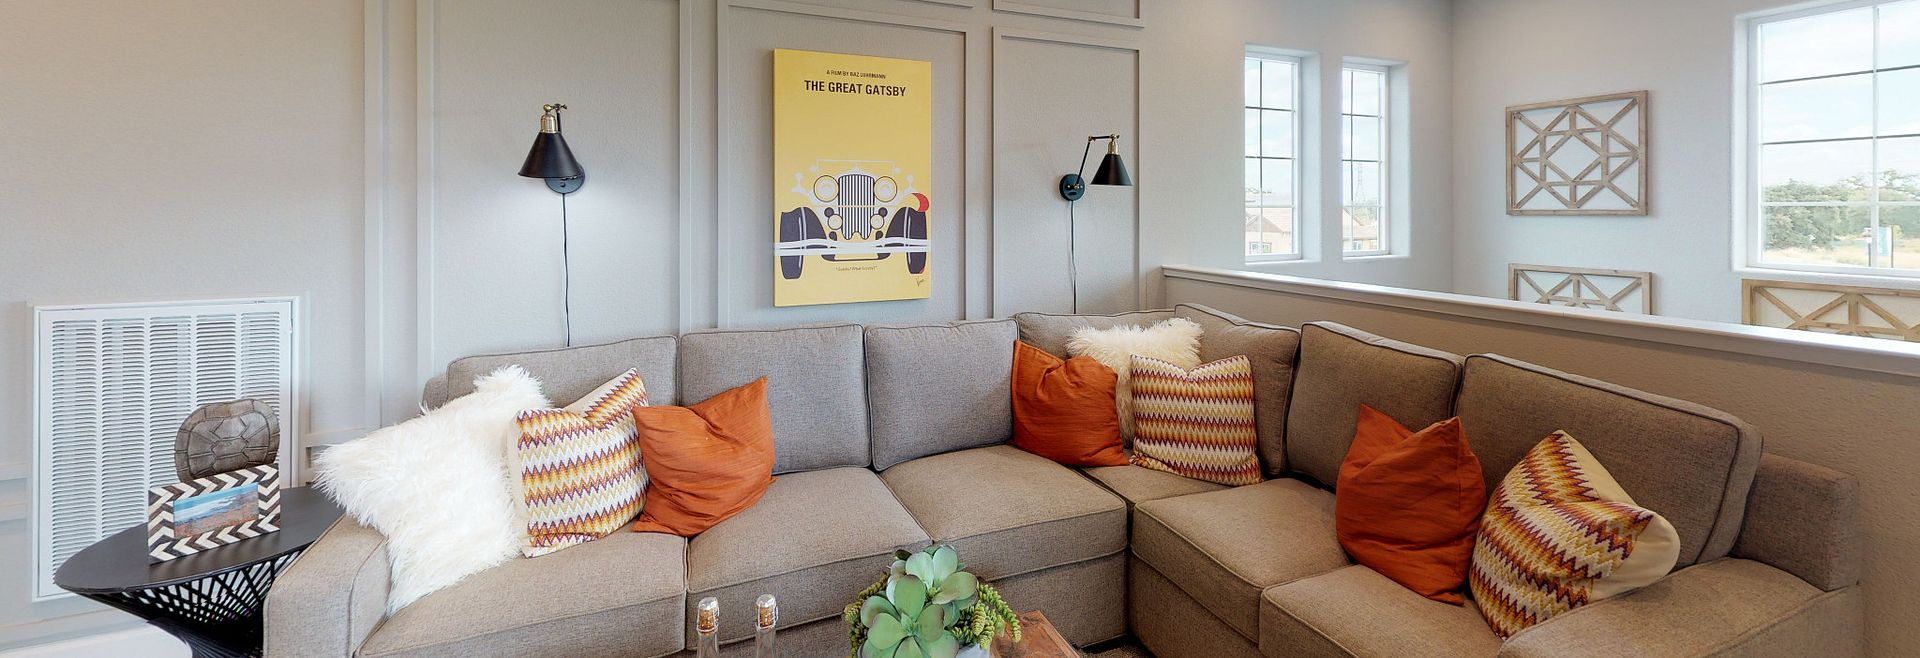 Living Area featured in the Muros with Loft By Shea Homes - Trilogy in Oakland-Alameda, CA